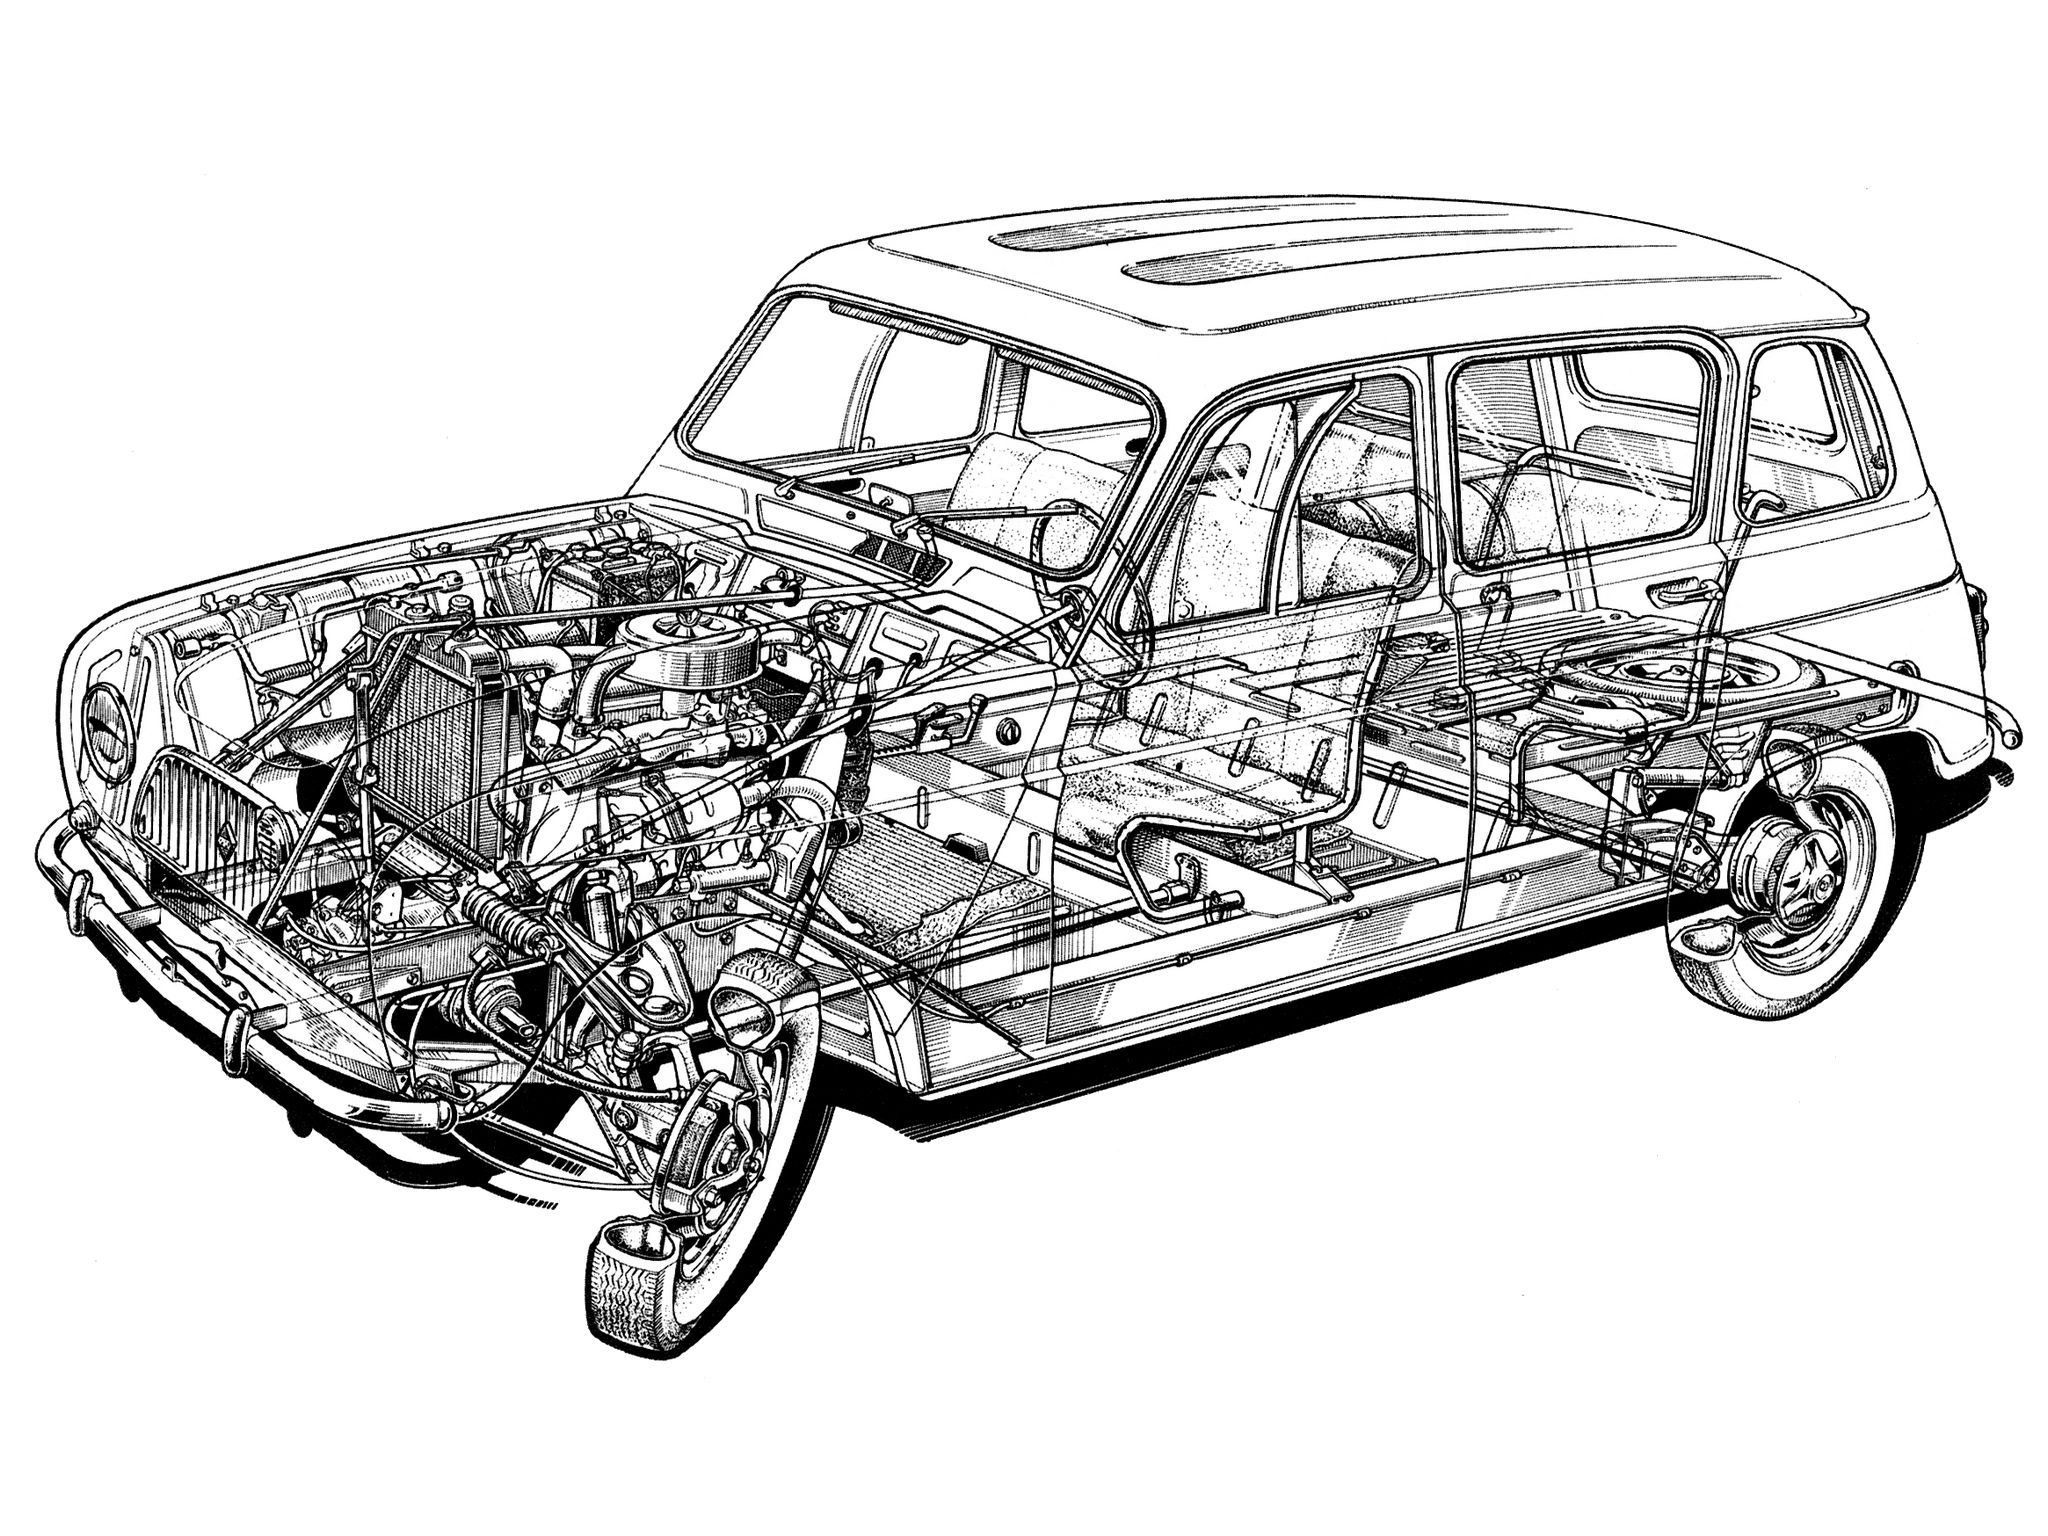 1961-1967 Renault 4 - Illustration unattributed